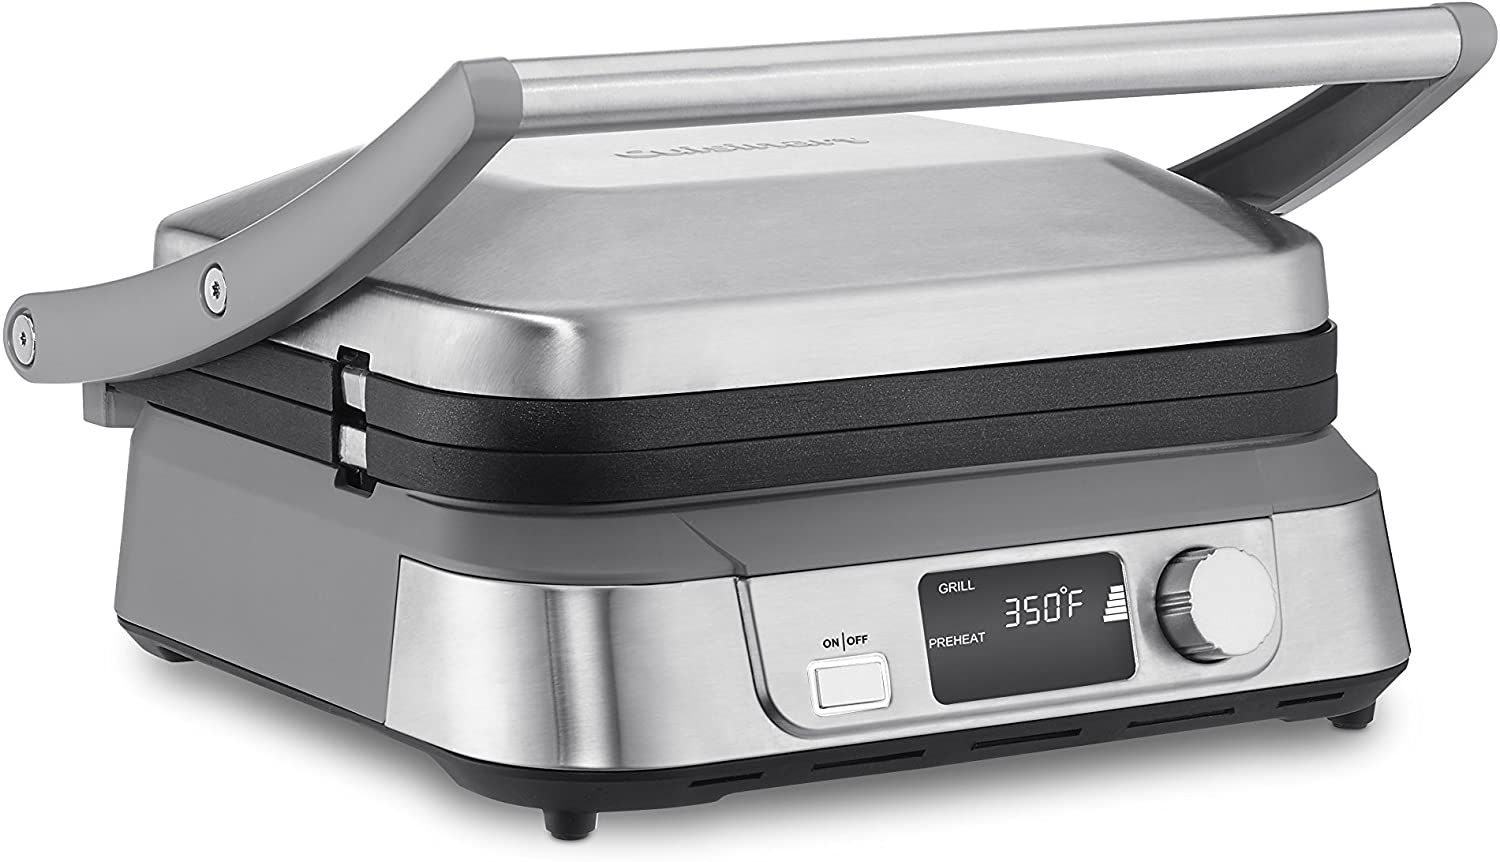 Cuisinart GR-5BP1 stainless steel electric Griddler